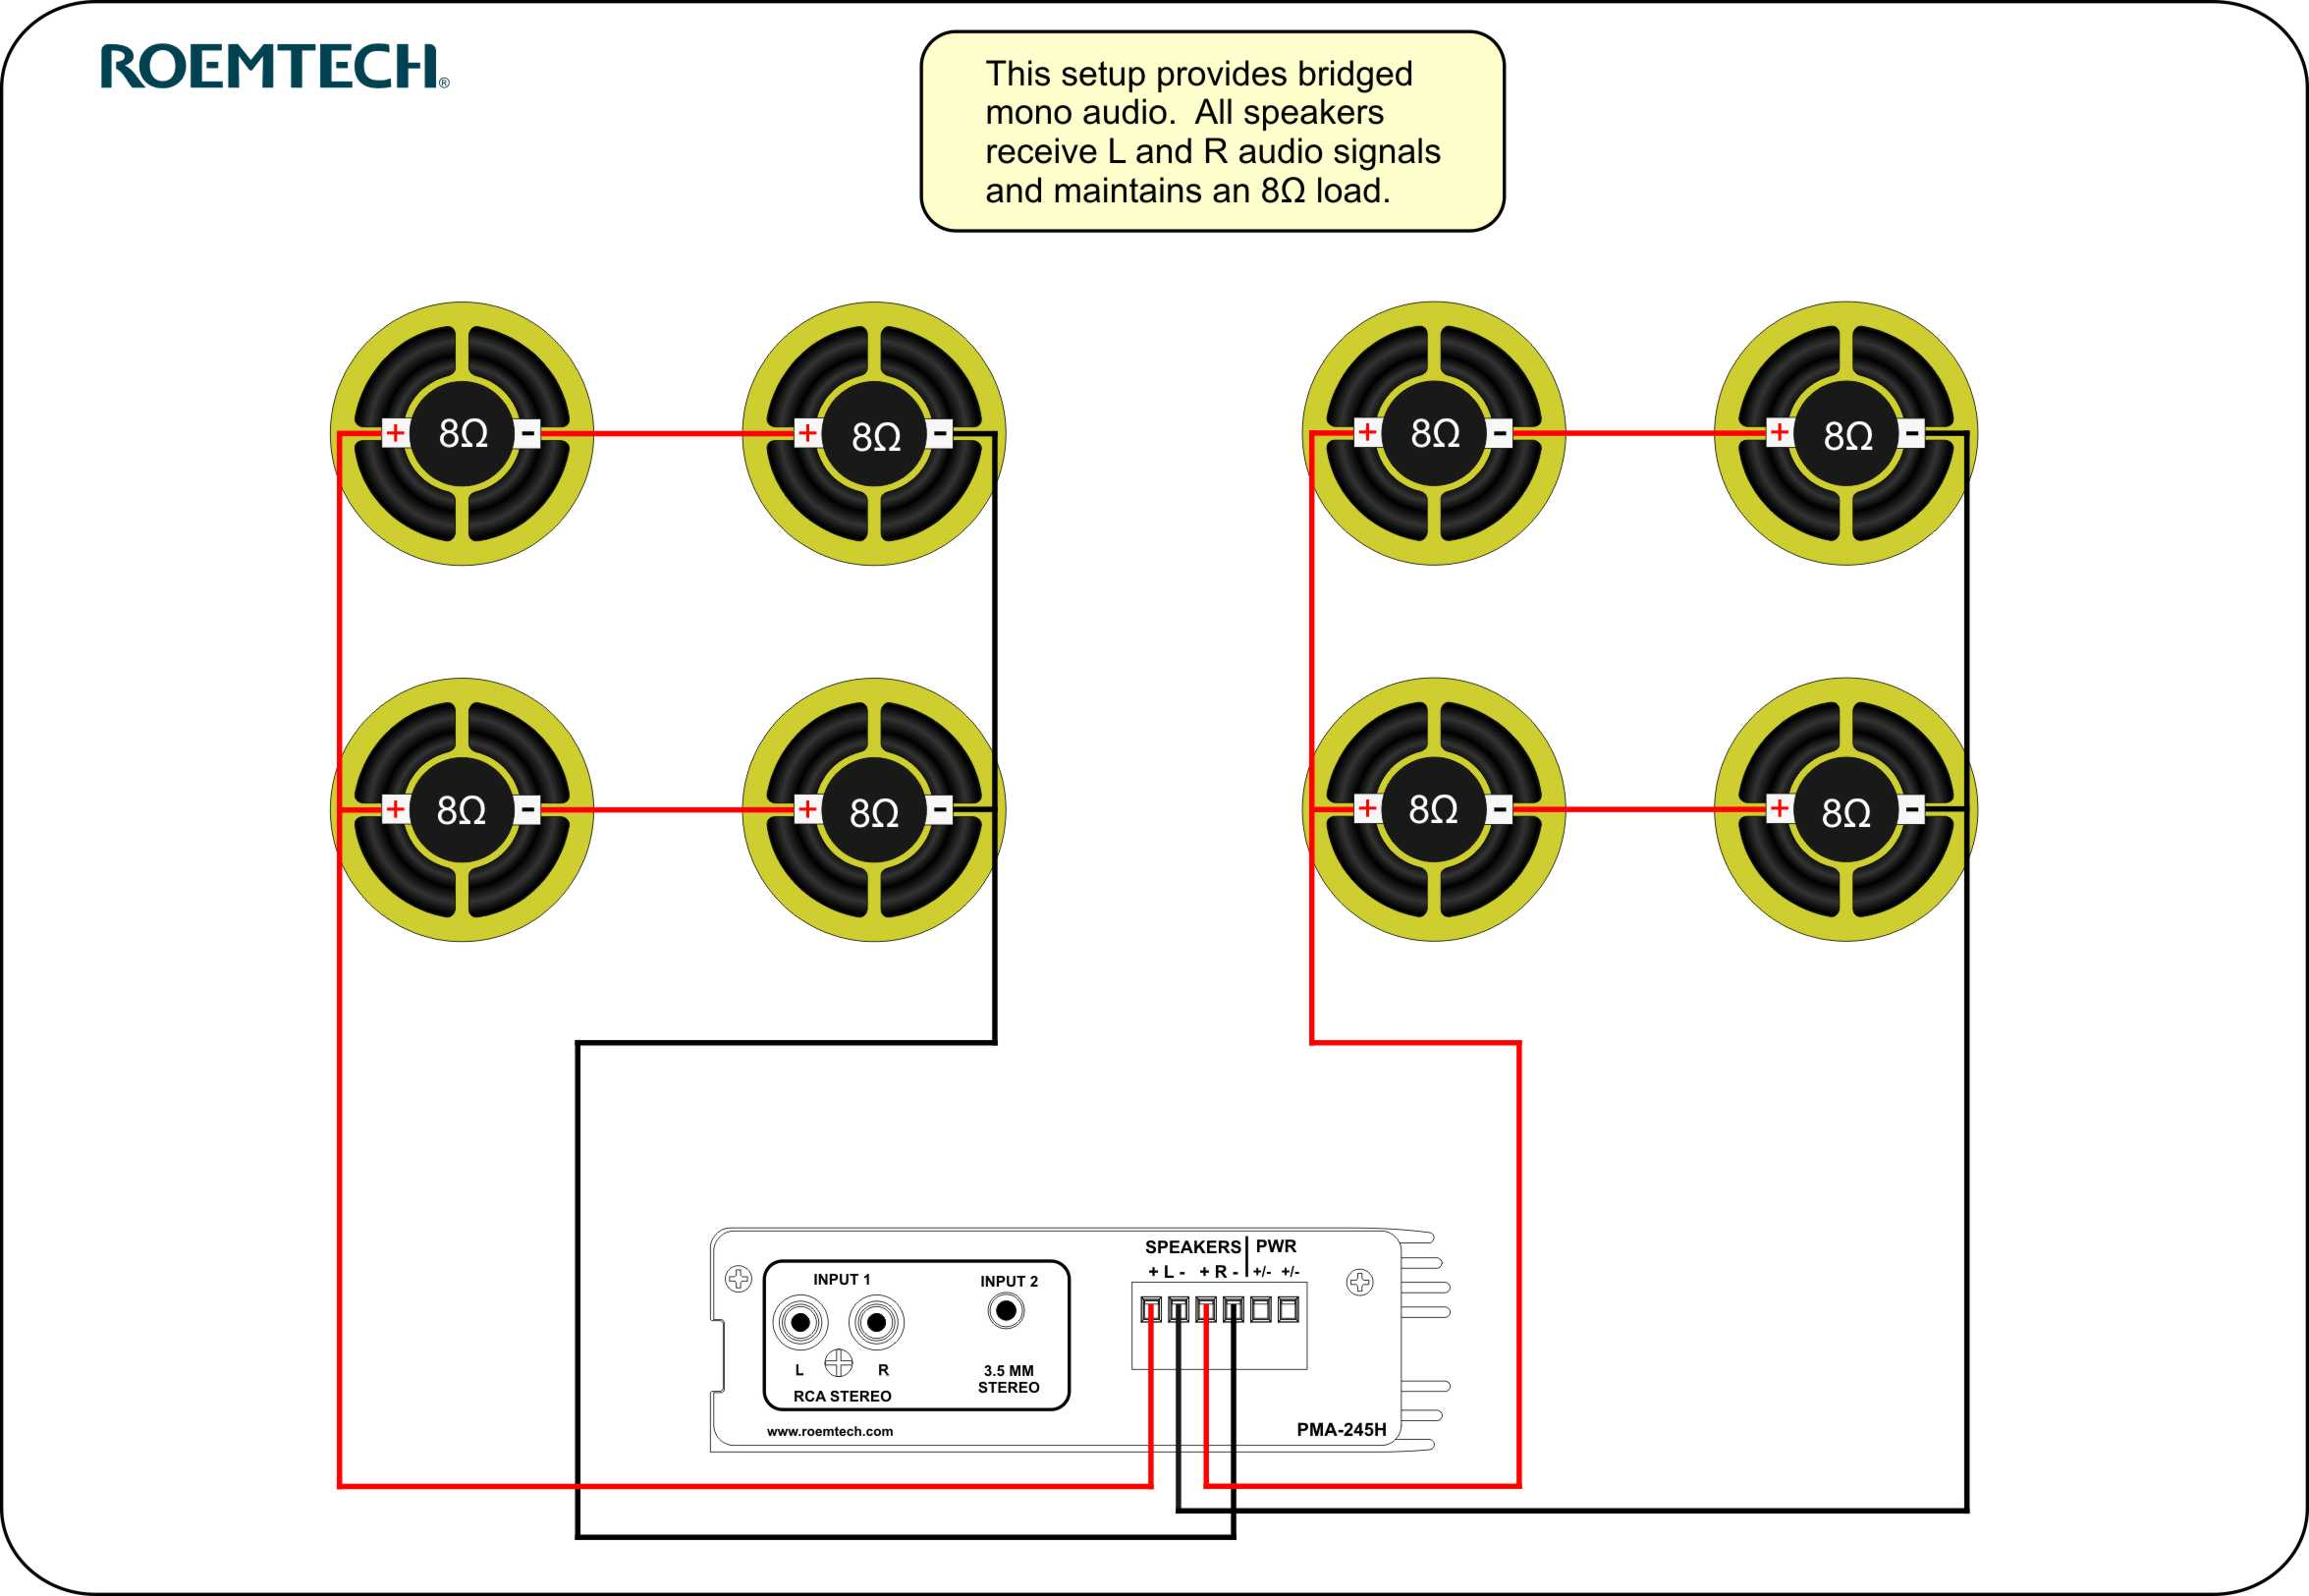 classroom_audio_multiple_speaker classroom audio systems multiple speaker wiring diagram pa wiring diagram at panicattacktreatment.co